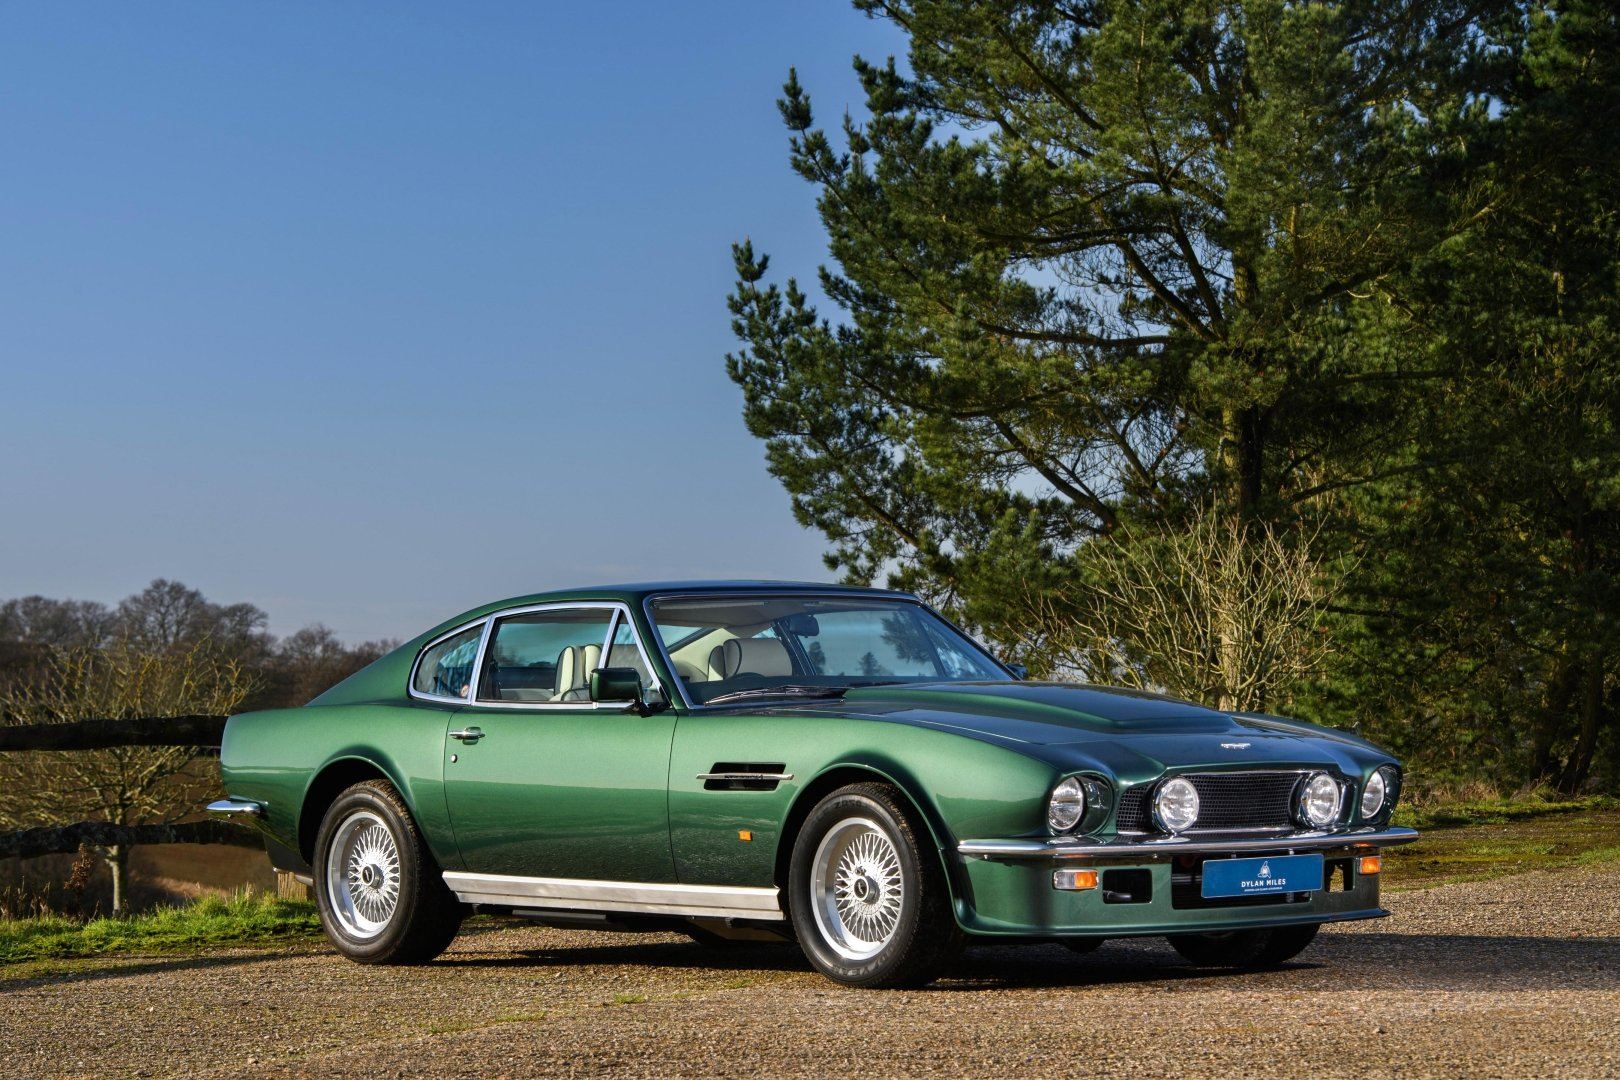 1989 Aston Martin V8 Vantage X Pack Coupe 16 500 Miles Two Owners From New Classic Driver Market